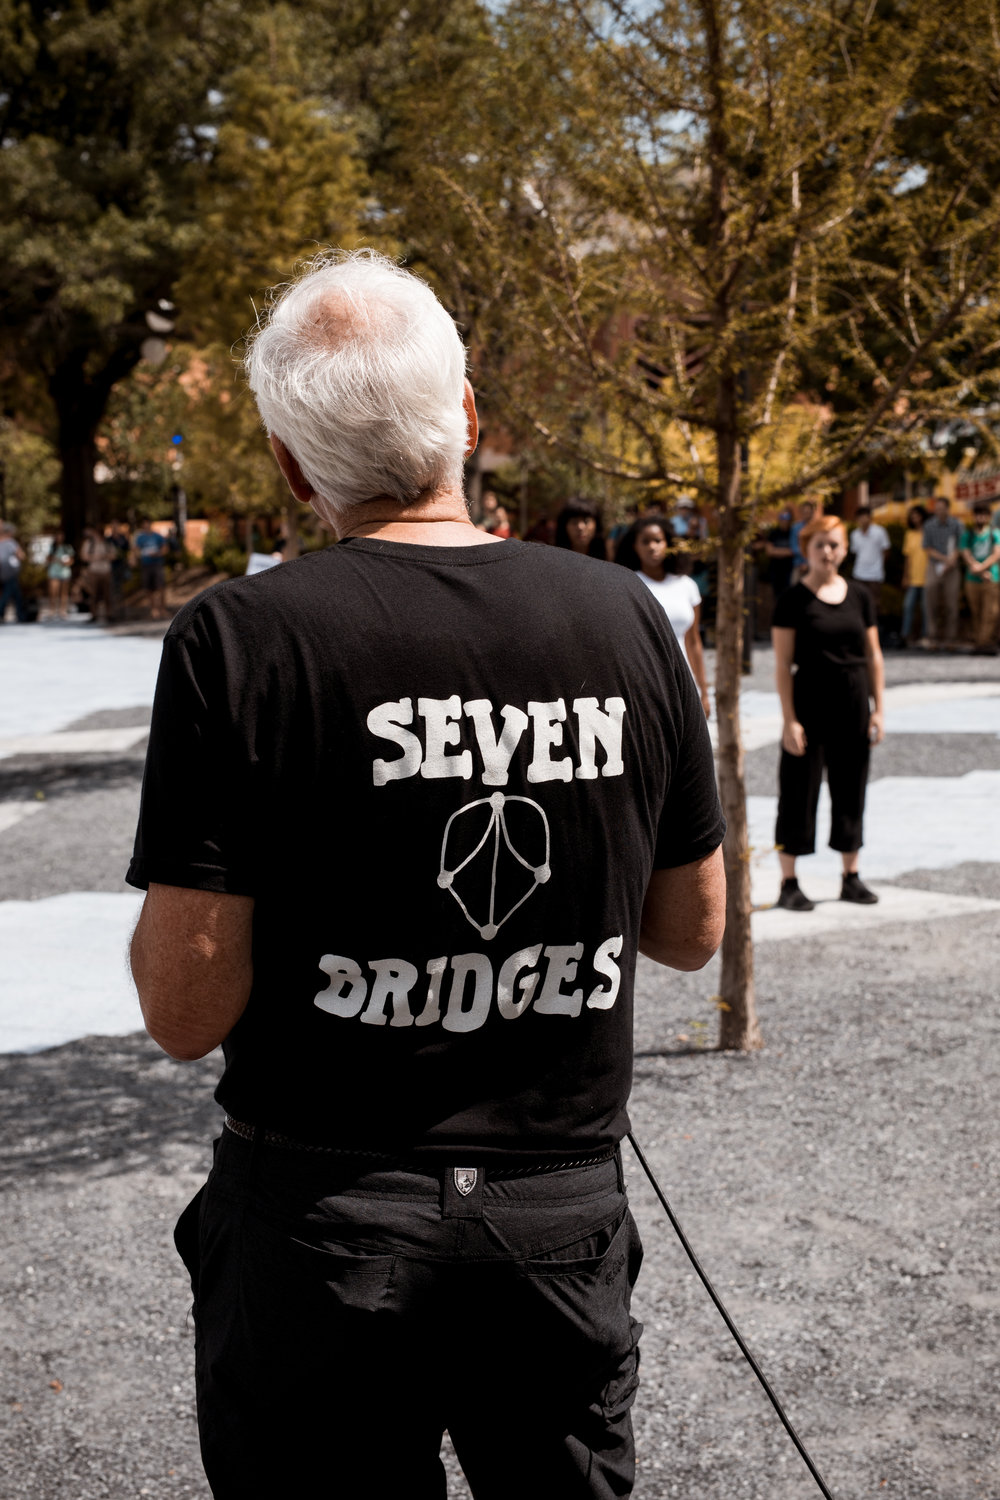 SevenBridges-7969.jpg